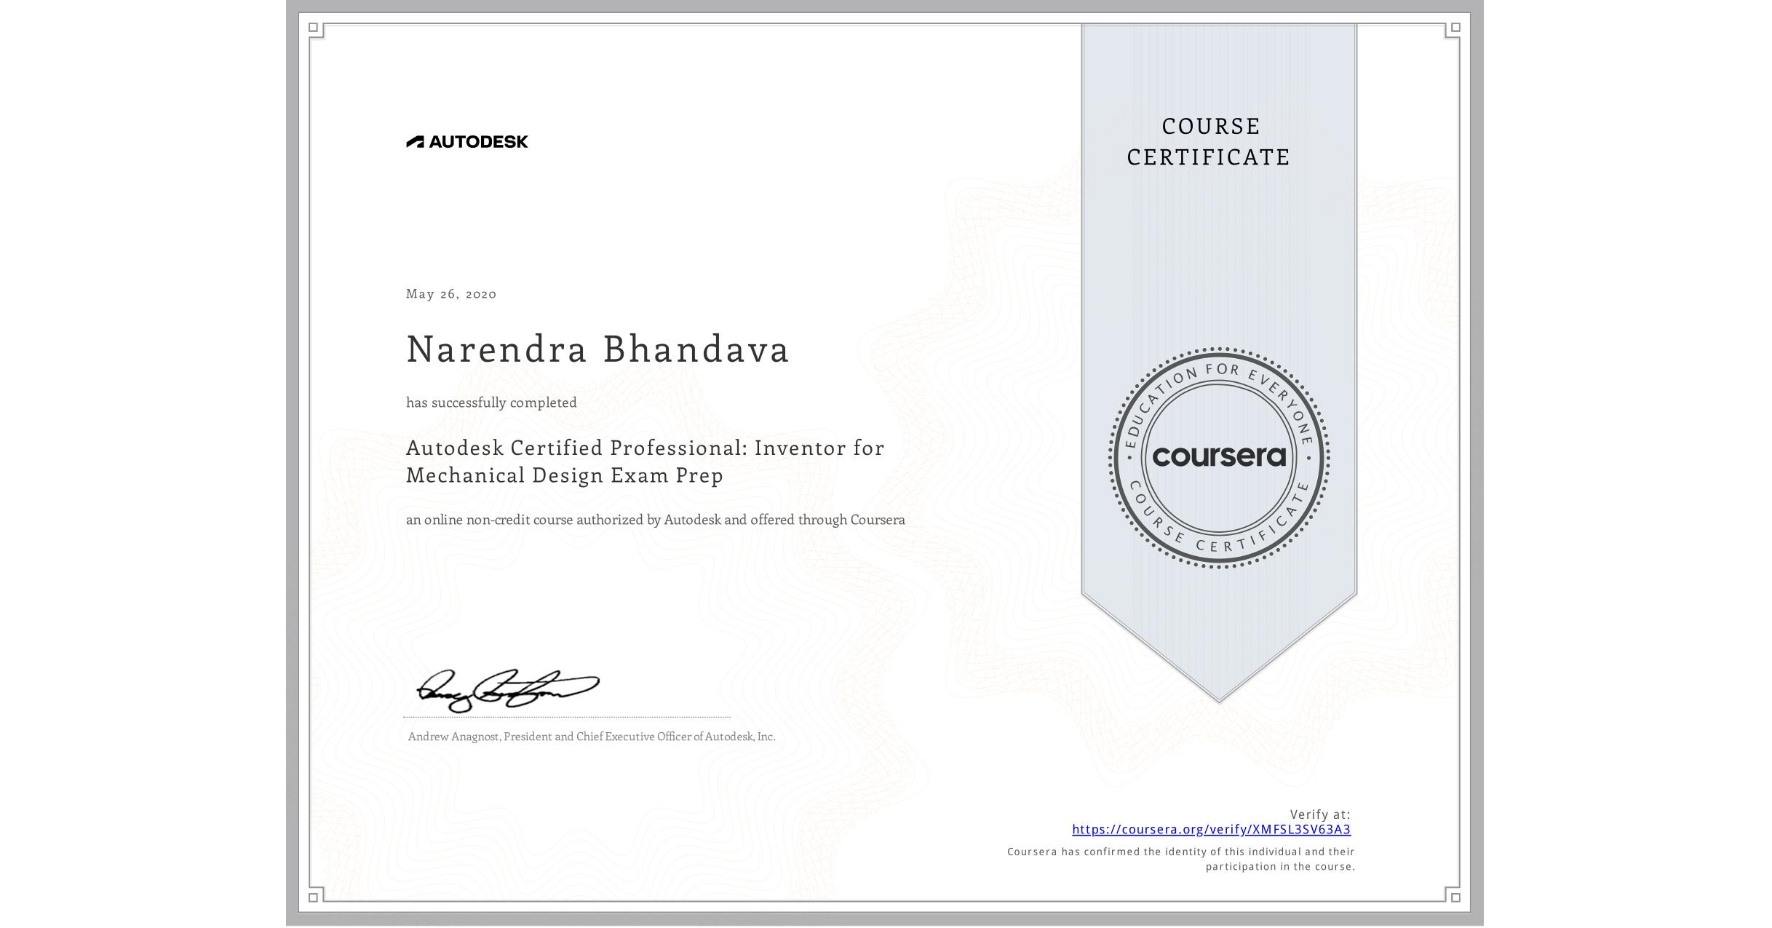 View certificate for Narendra Bhandava, Autodesk Certified Professional: Inventor for Mechanical Design Exam Prep, an online non-credit course authorized by Autodesk and offered through Coursera